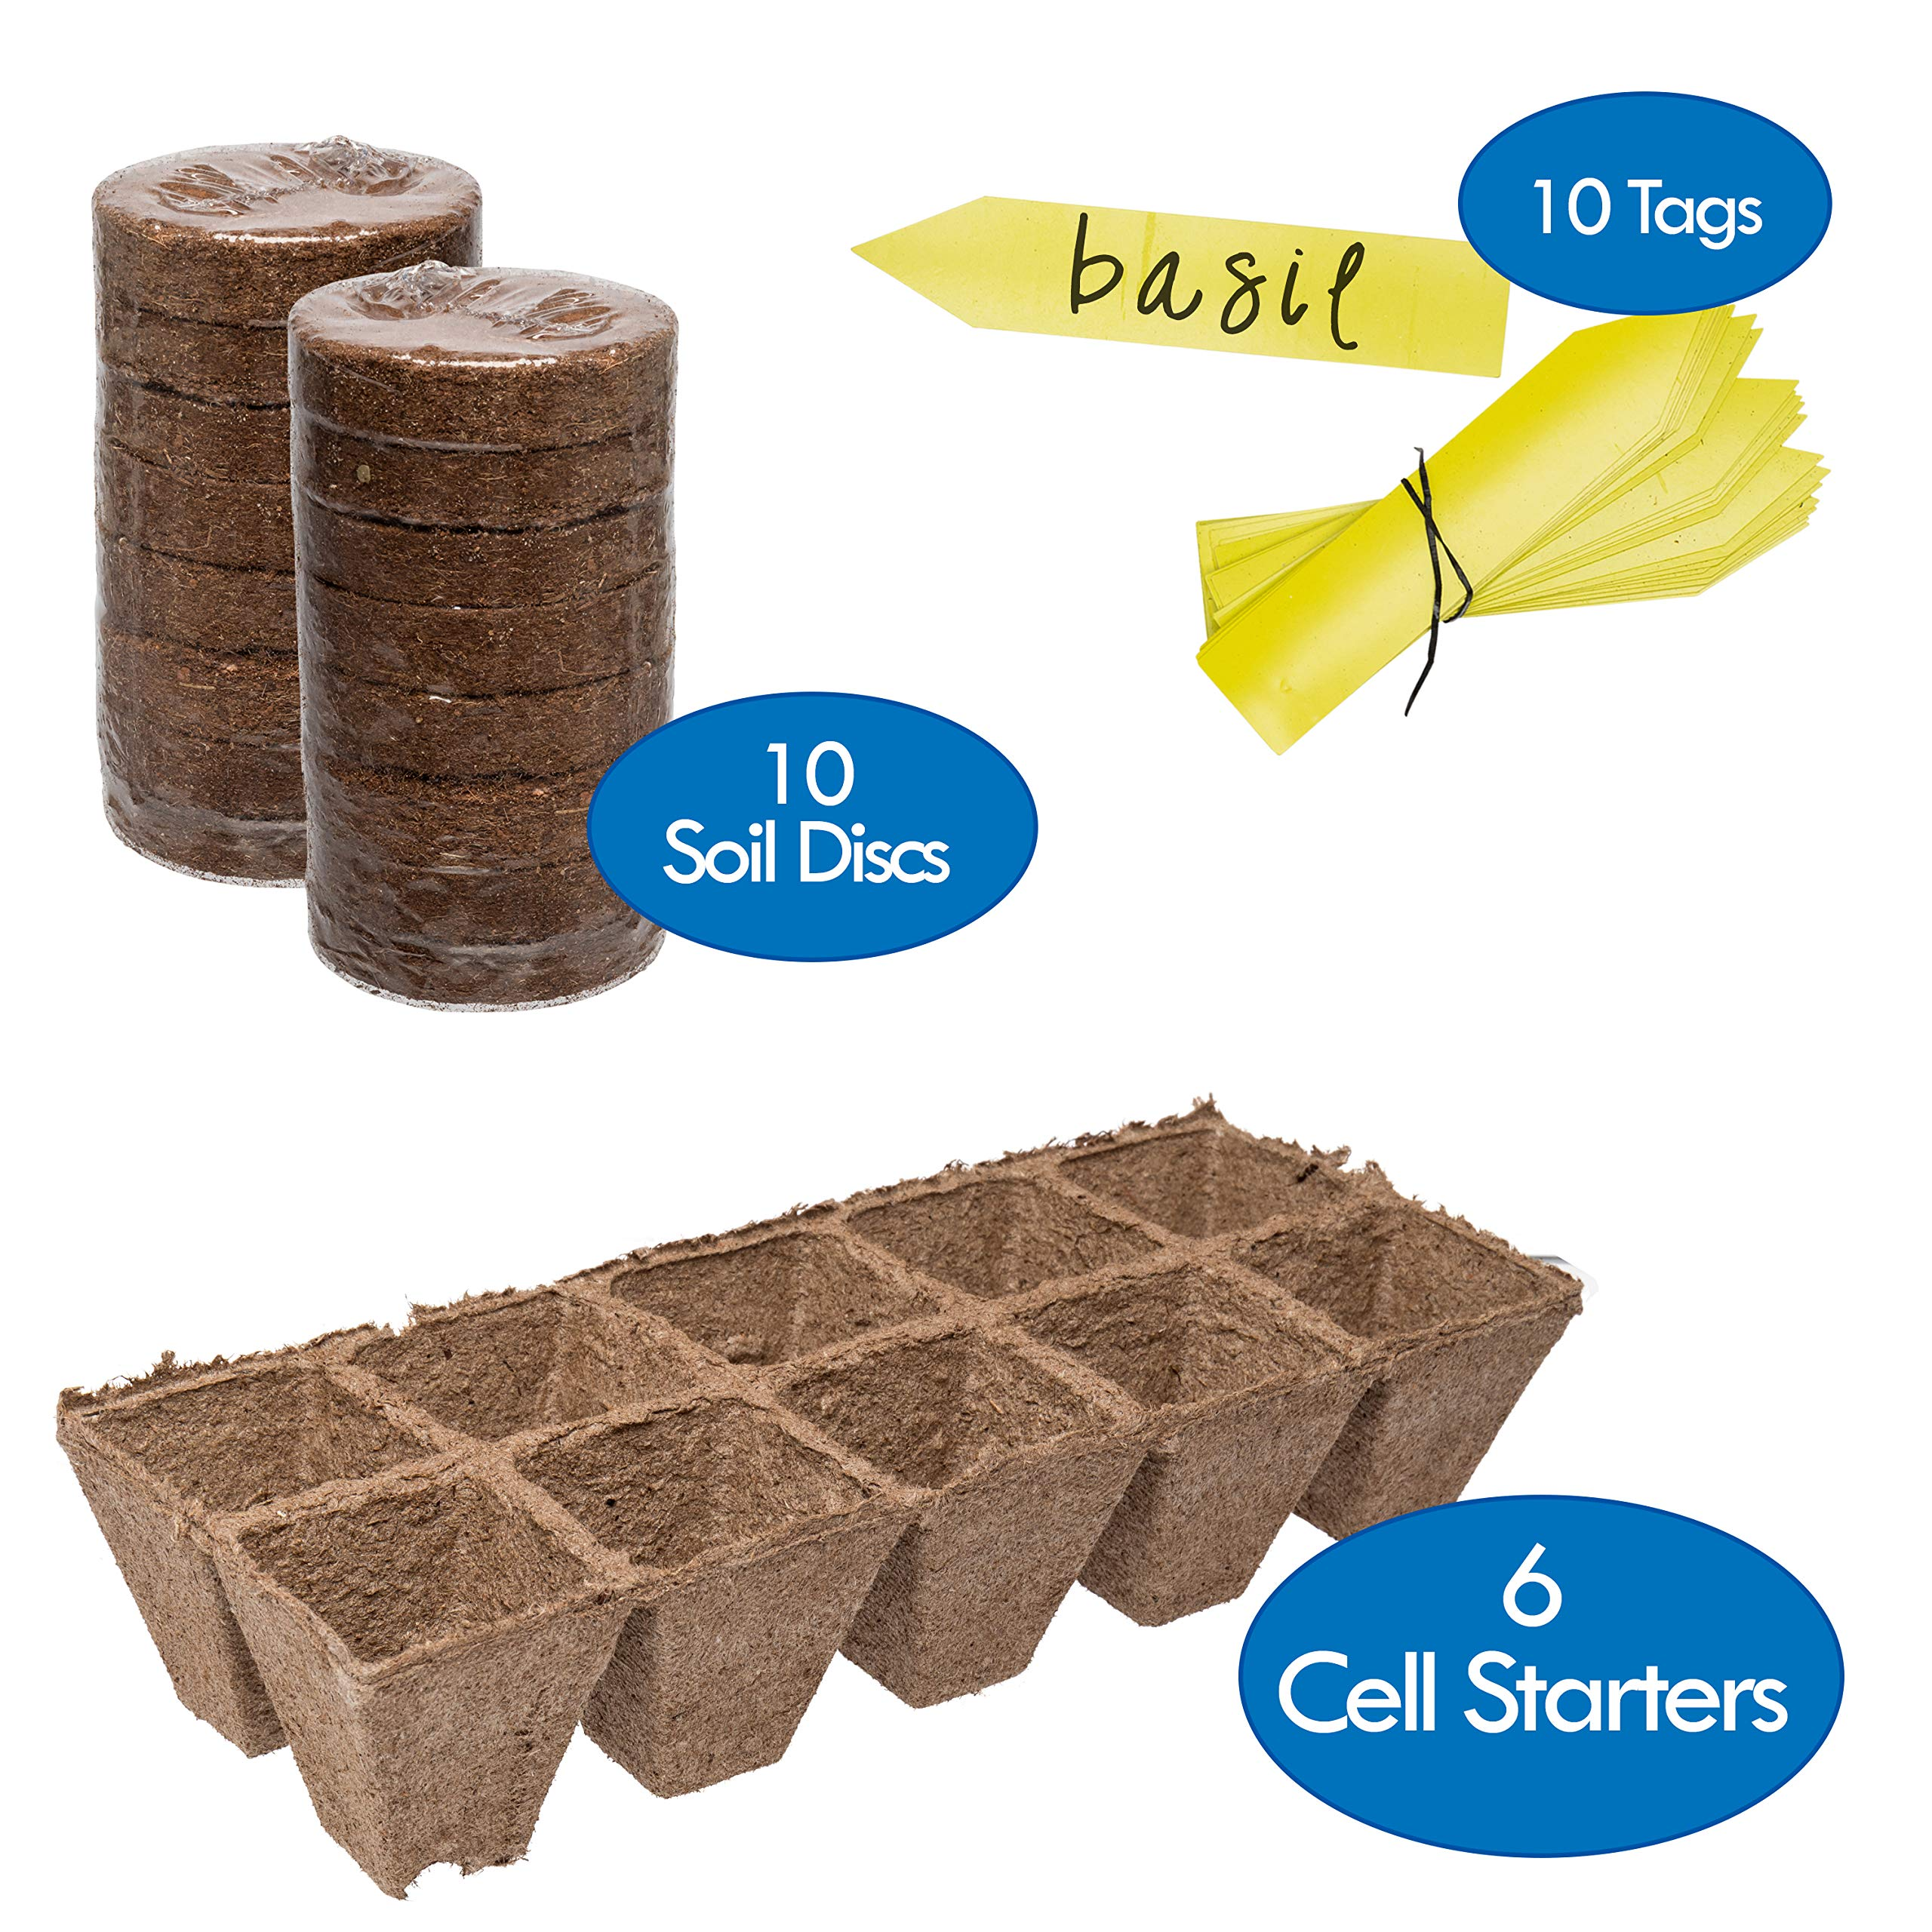 Germination Tray & Soil Starter Pack | 6 Pack of 10 Cell Starter Peat Trays (60 Cells) - 16 Peat Wafer Soil Disks & 10 Easy Read Label Tags | Reusable Potting Seed Starters & Soil